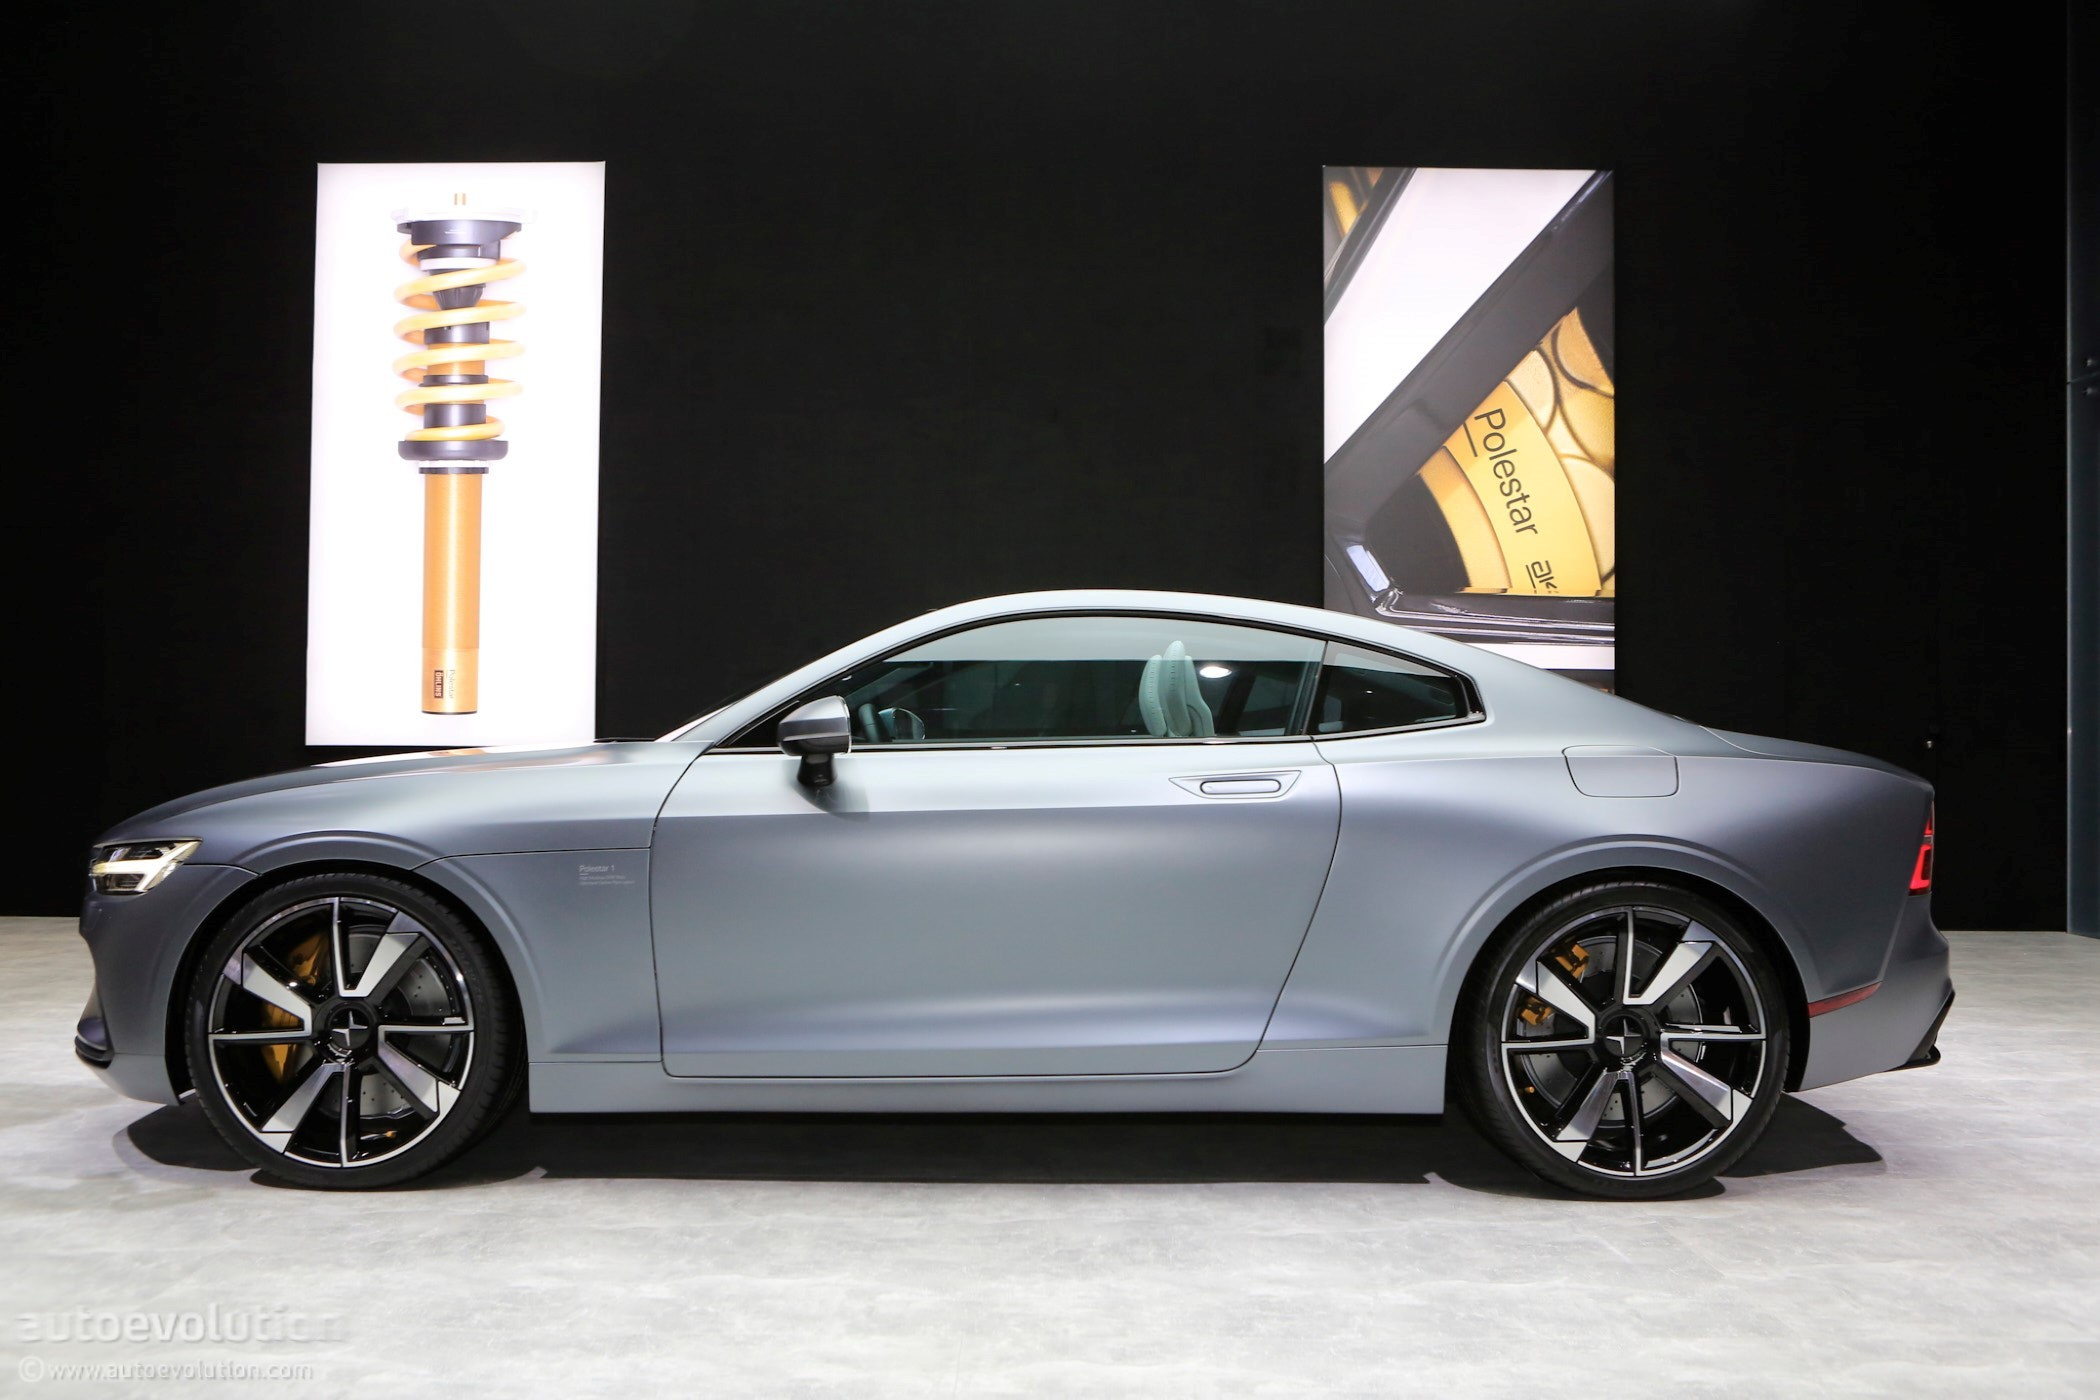 Polestar 1 pre-orders start in 18 countries